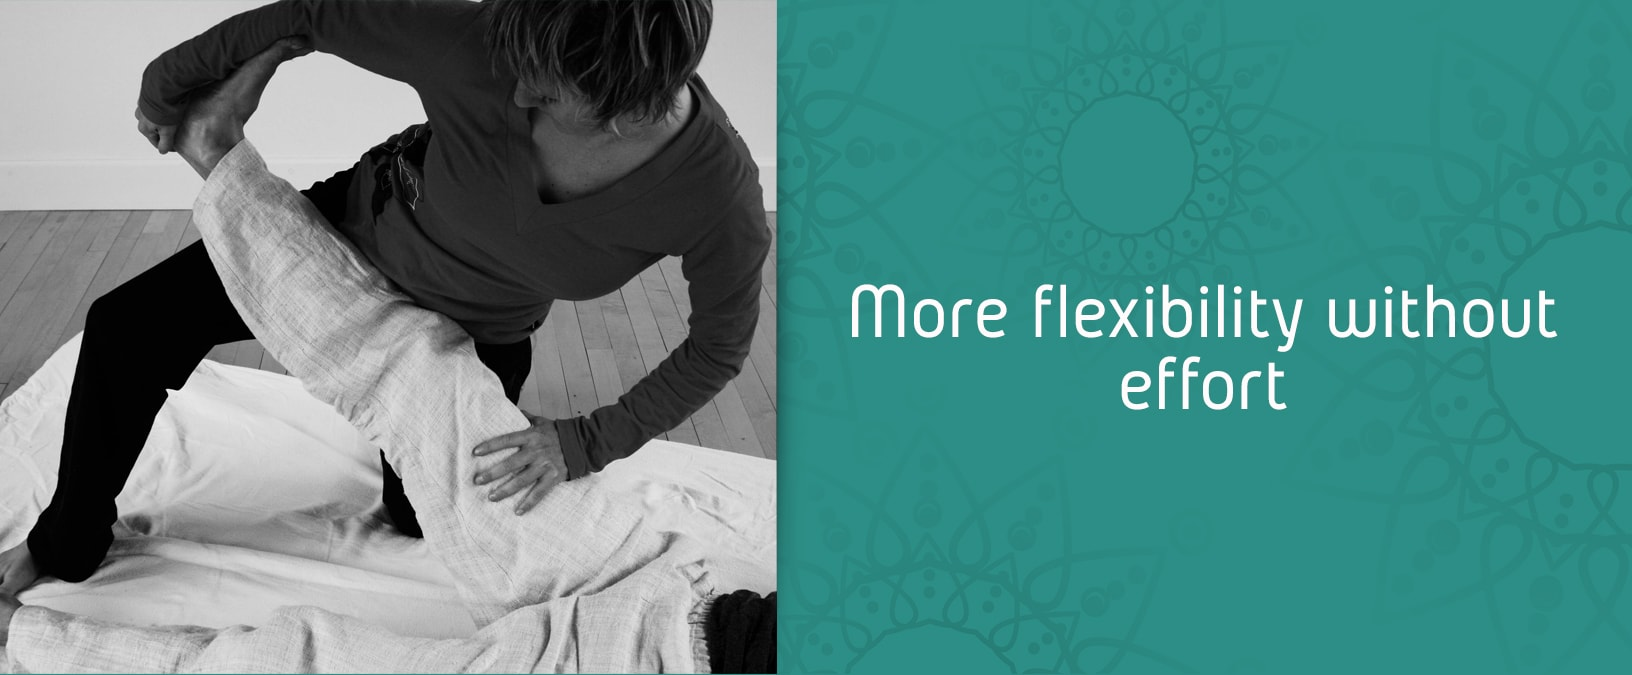 flexibility without effort